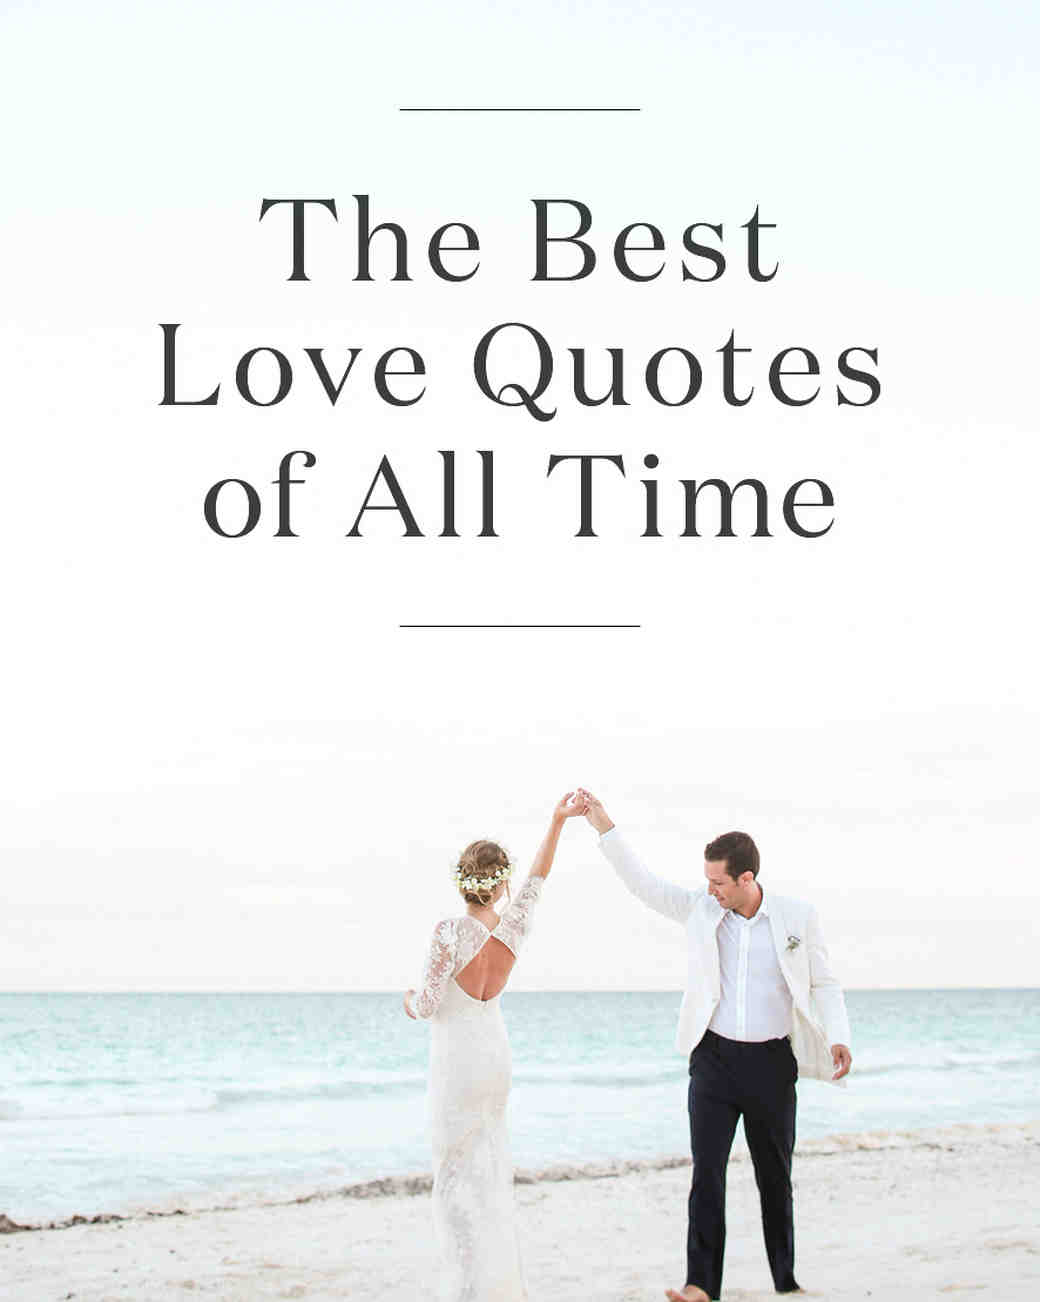 Love Quotes With Images The 20 Best Love Quotes Of All Time  Martha Stewart Weddings